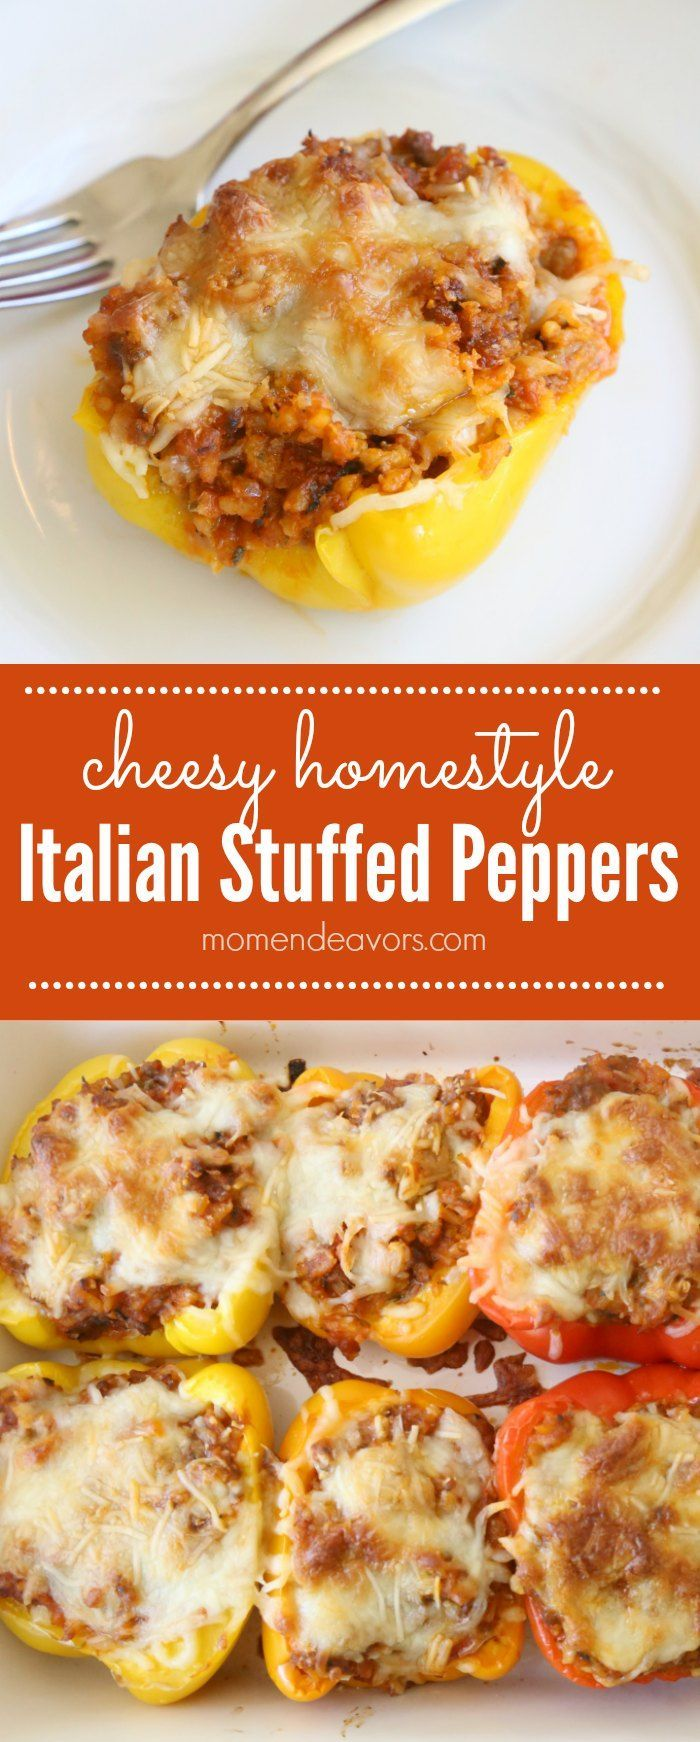 Cheesy Homestyle Italian Stuffed Peppers - this meal is full of veggies, gluten free, and tastes SO good! Sponsored by RAGÚ!